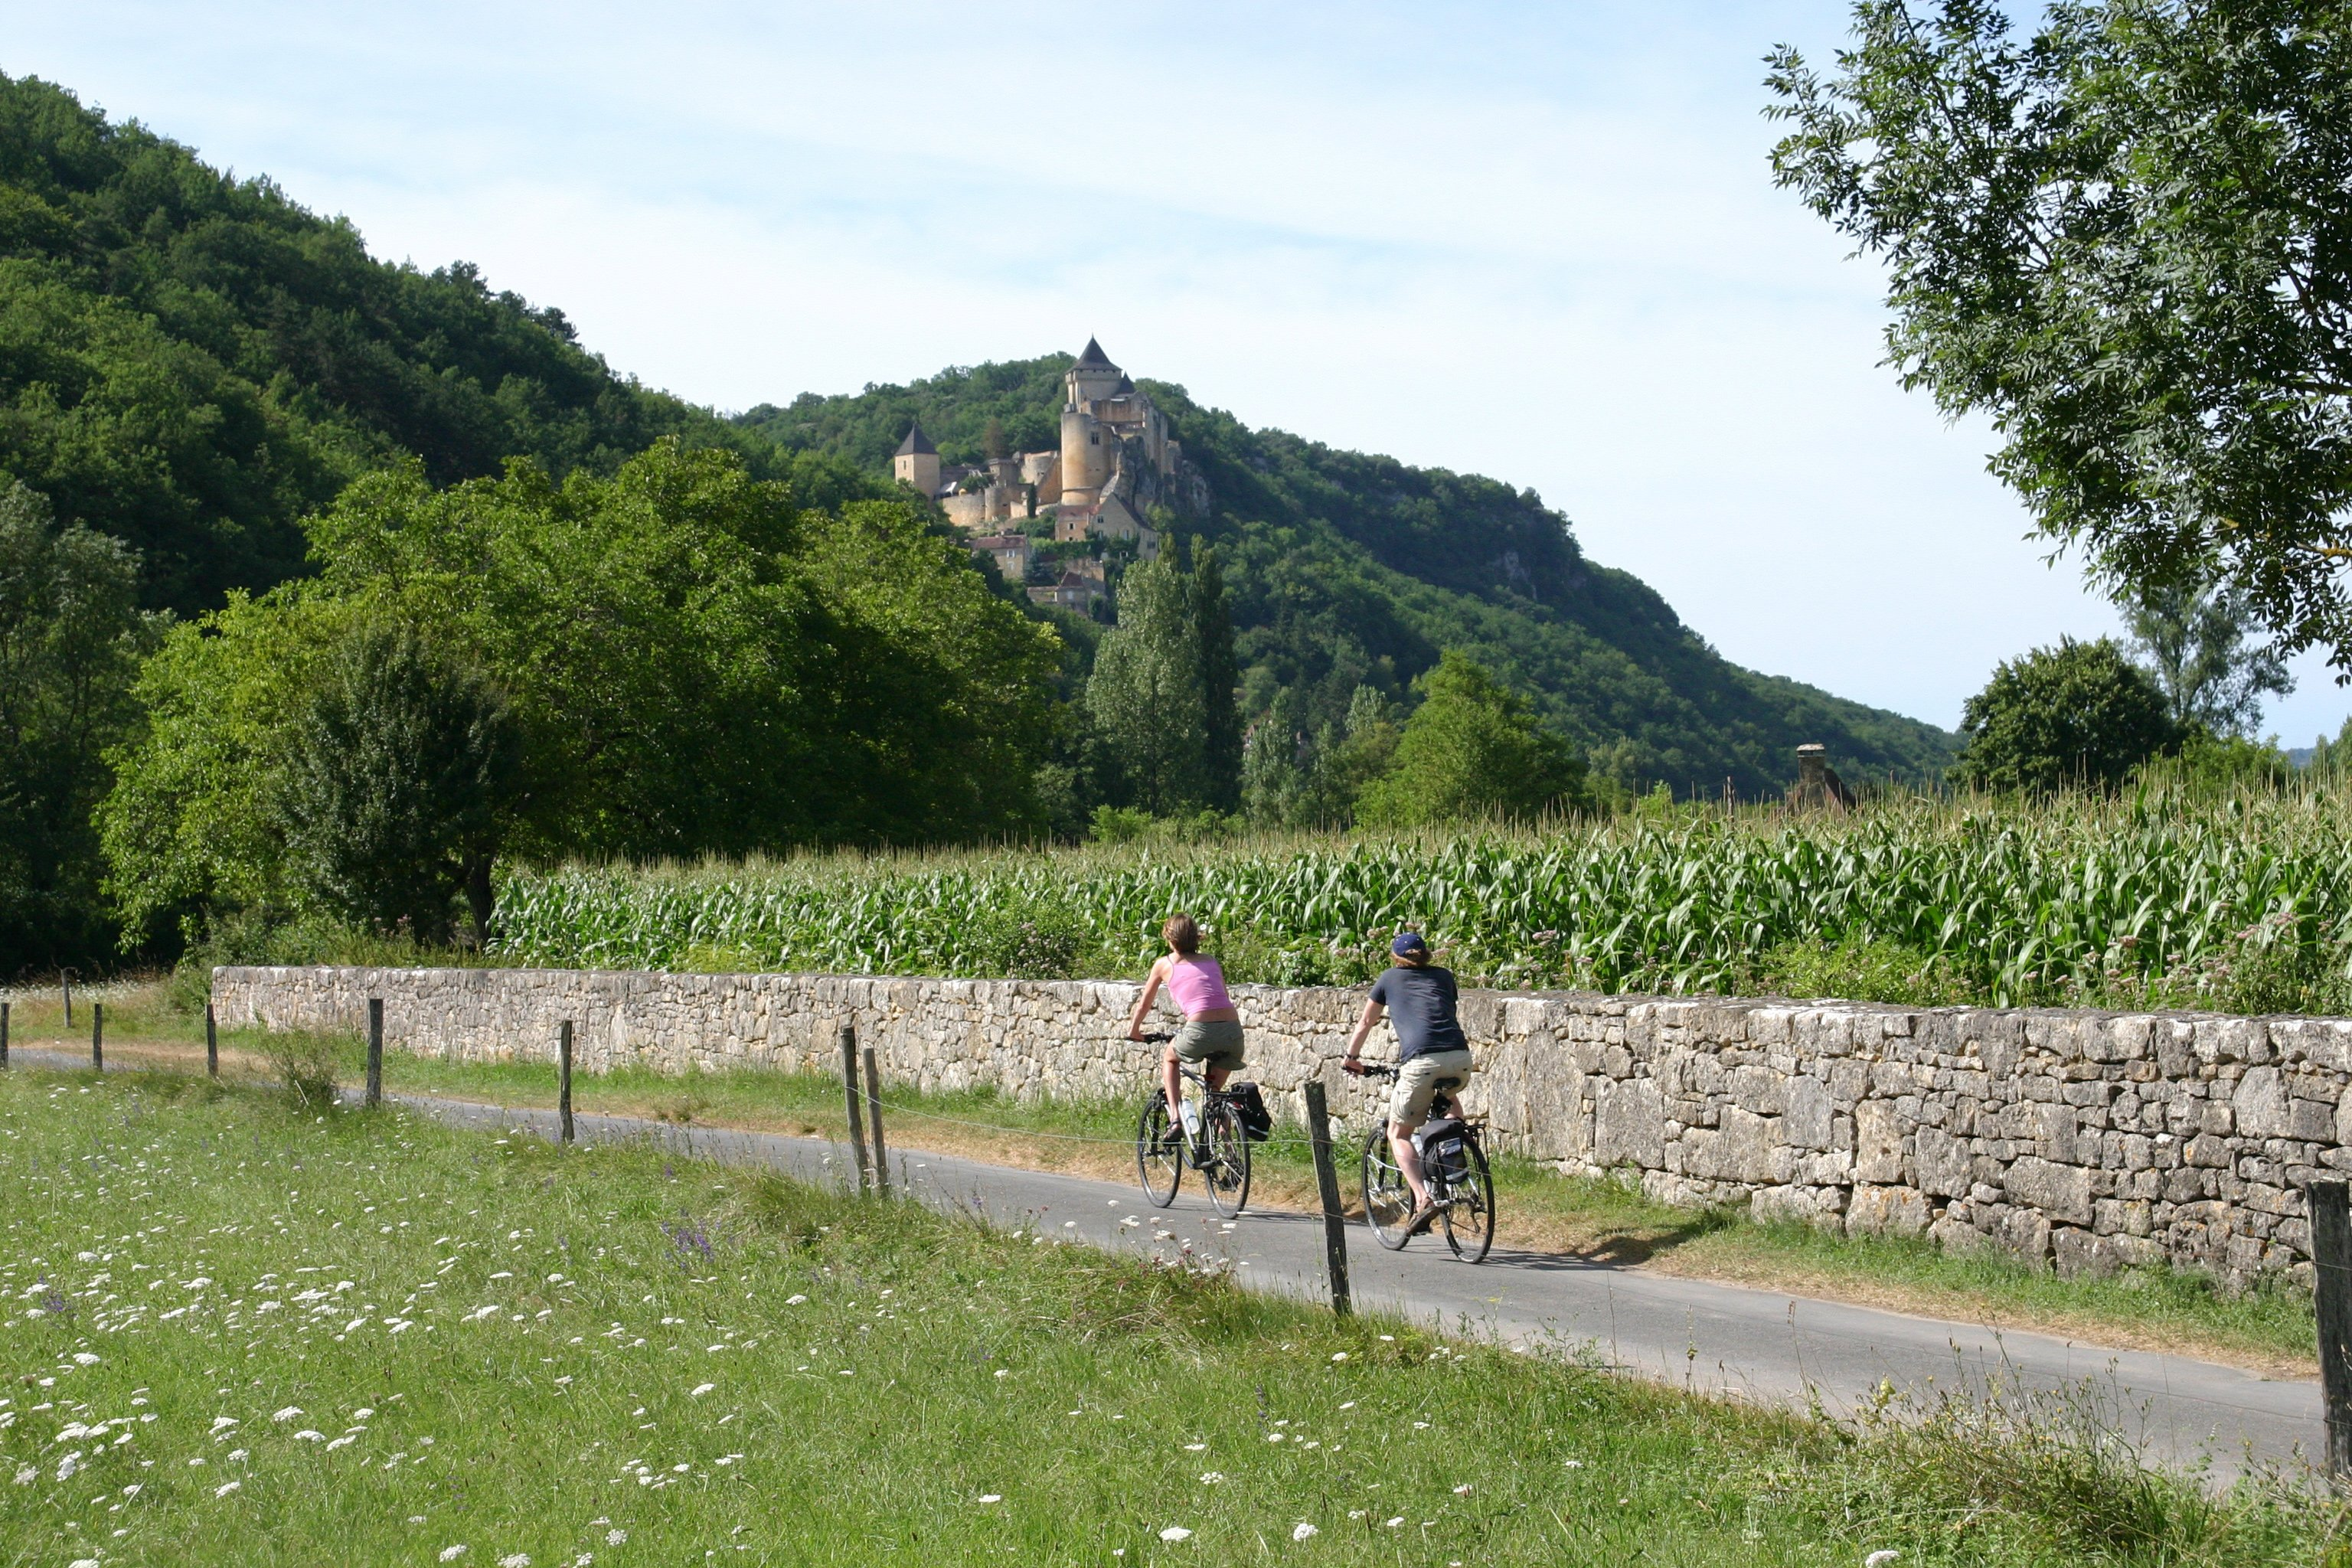 Headwater - Dordogne Gastronomic Self-guided Cycling